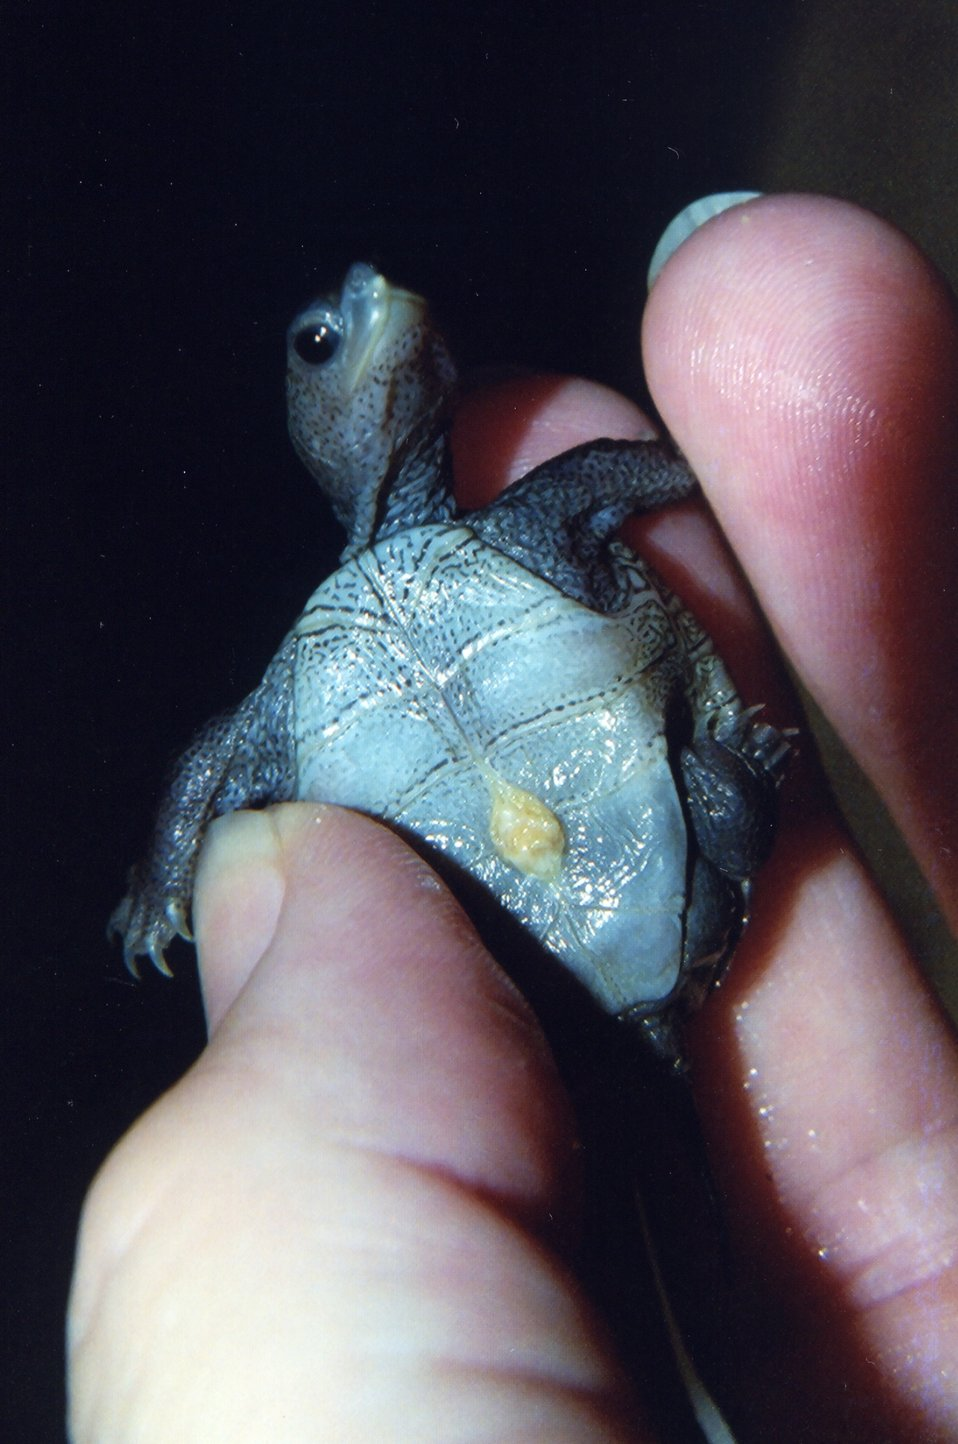 Newly hatched diamondback terrapin with egg sac and egg tooth.